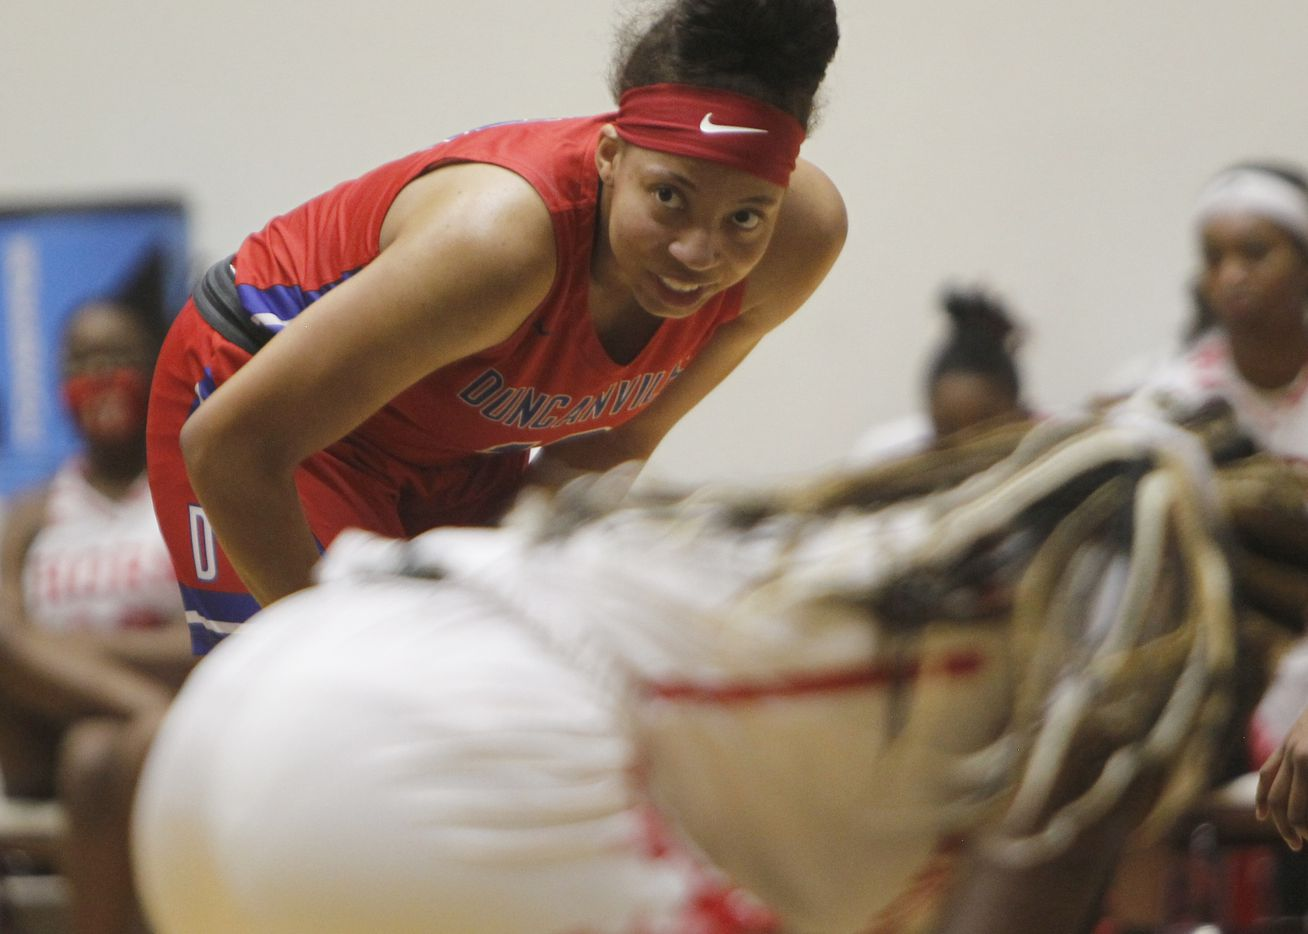 Duncanville forward Zaria Rufus (12) takes a breather as she awaits a teammate to put up a shot at the free throw line during first half action against Mesquite Horn. Duncanville won 82-52 to advance. The two teams played their Class 6A area-round playoff basketball game at Loos Field House in Addison on February 23, 2021. (Steve Hamm/ Special Contributor)